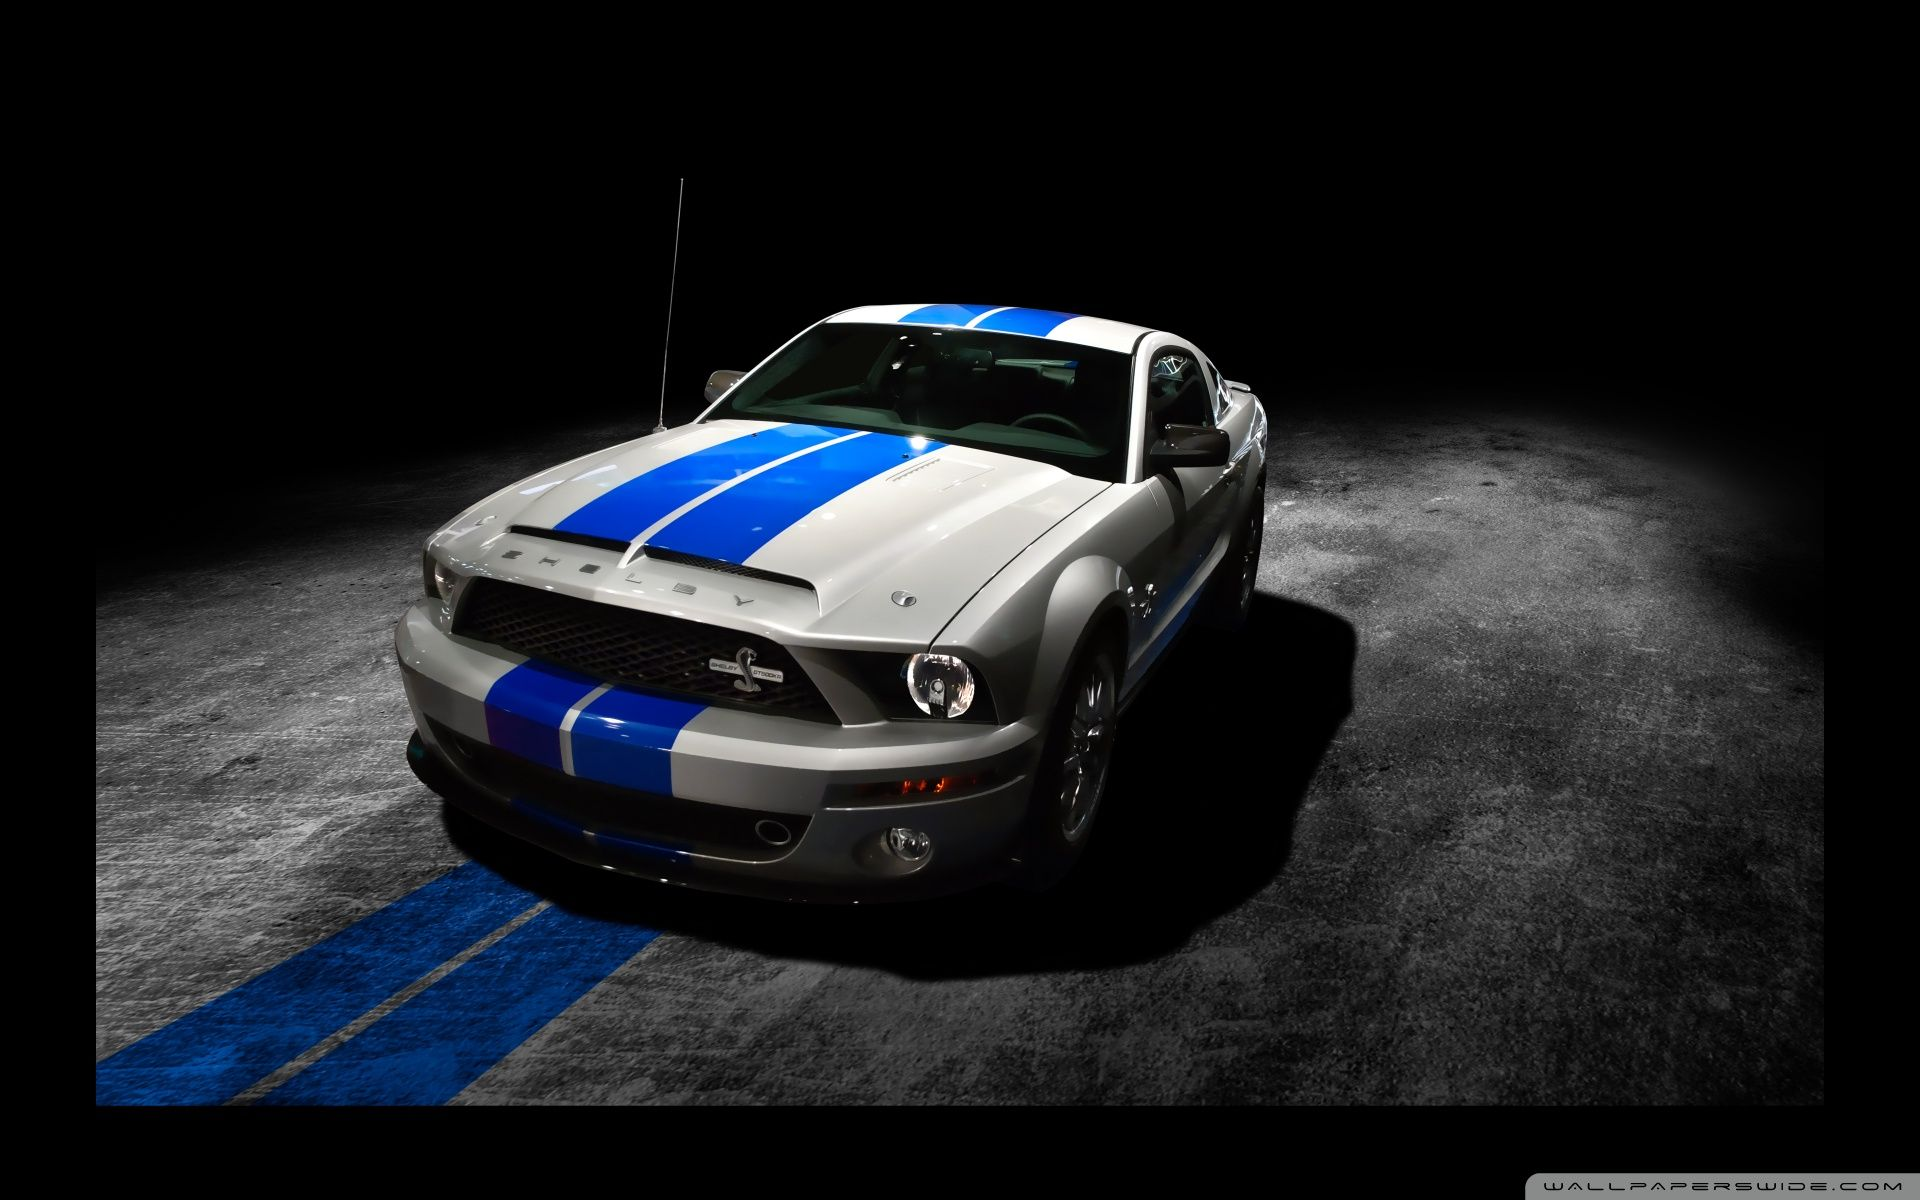 Hot Cars Wallpapers: Find best latest Hot Cars Wallpapers in HD for ...